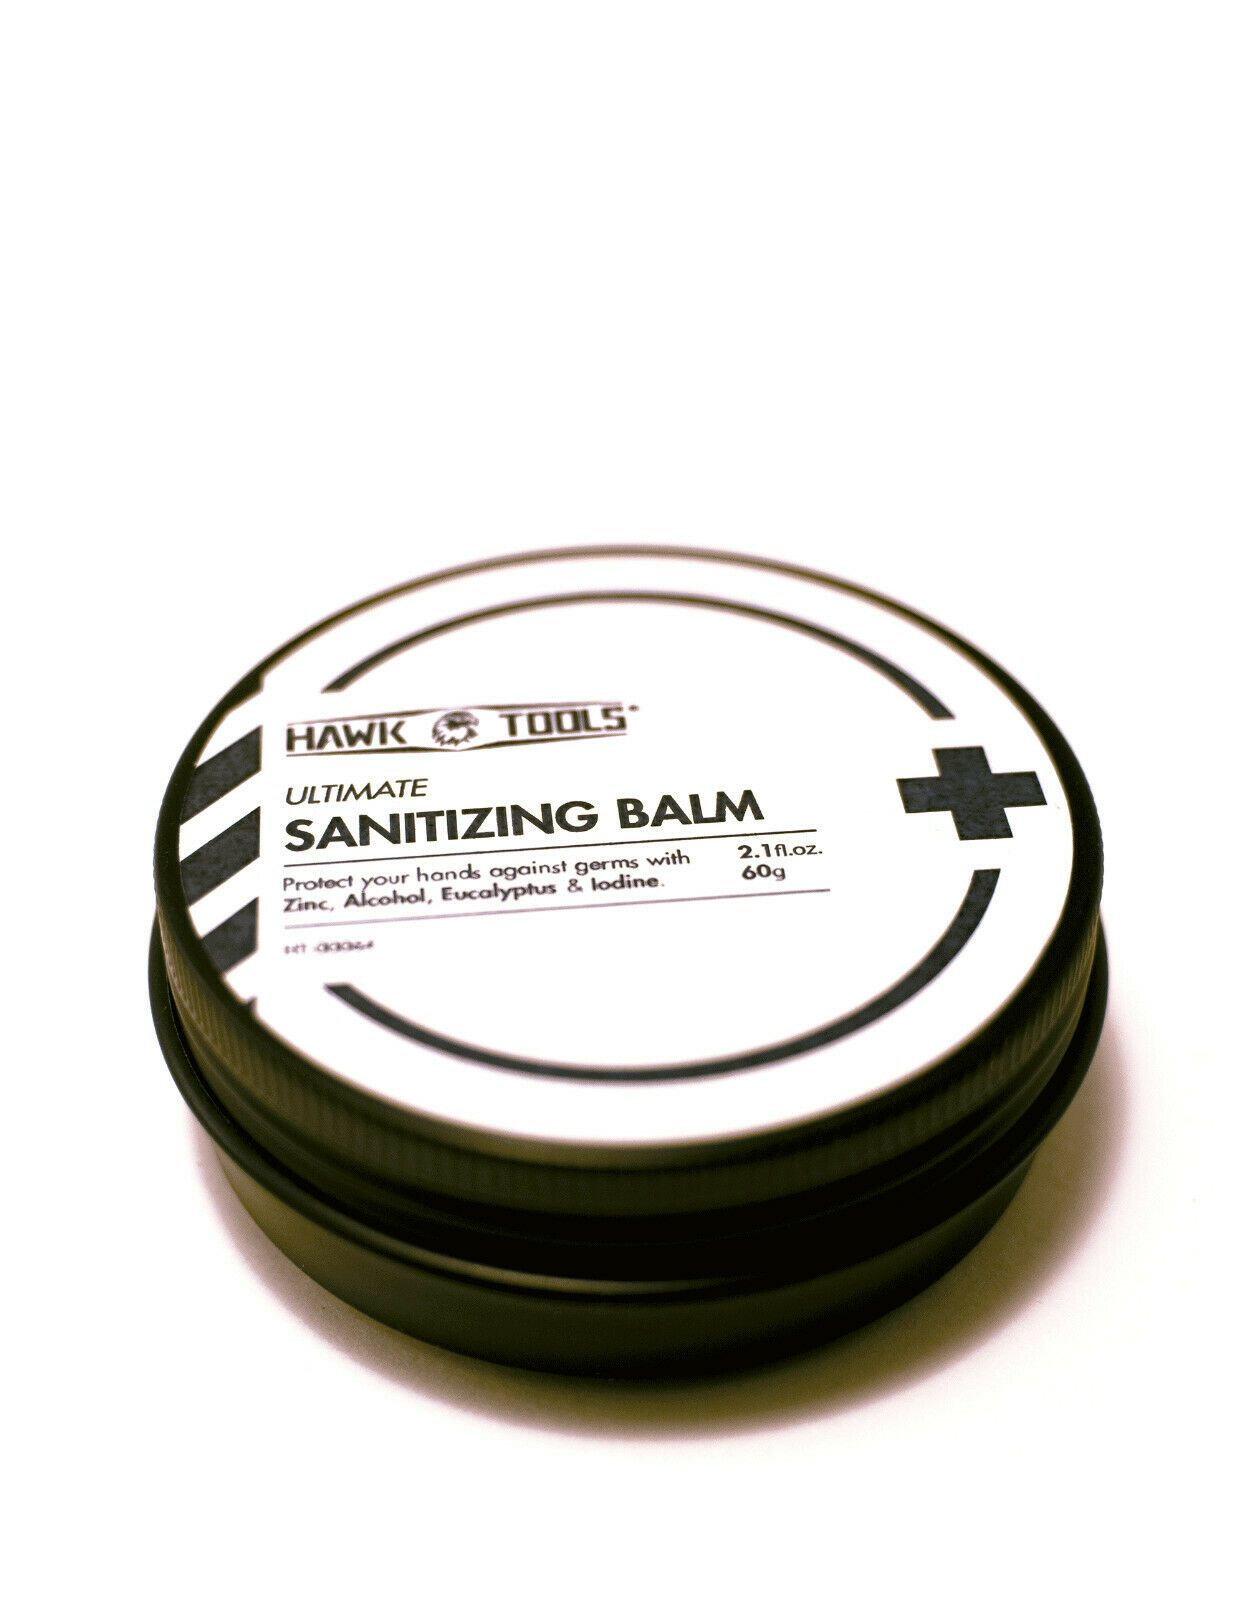 Our Sanitizing Balm Is Now On Ebay Handsanitizer Disinfectant